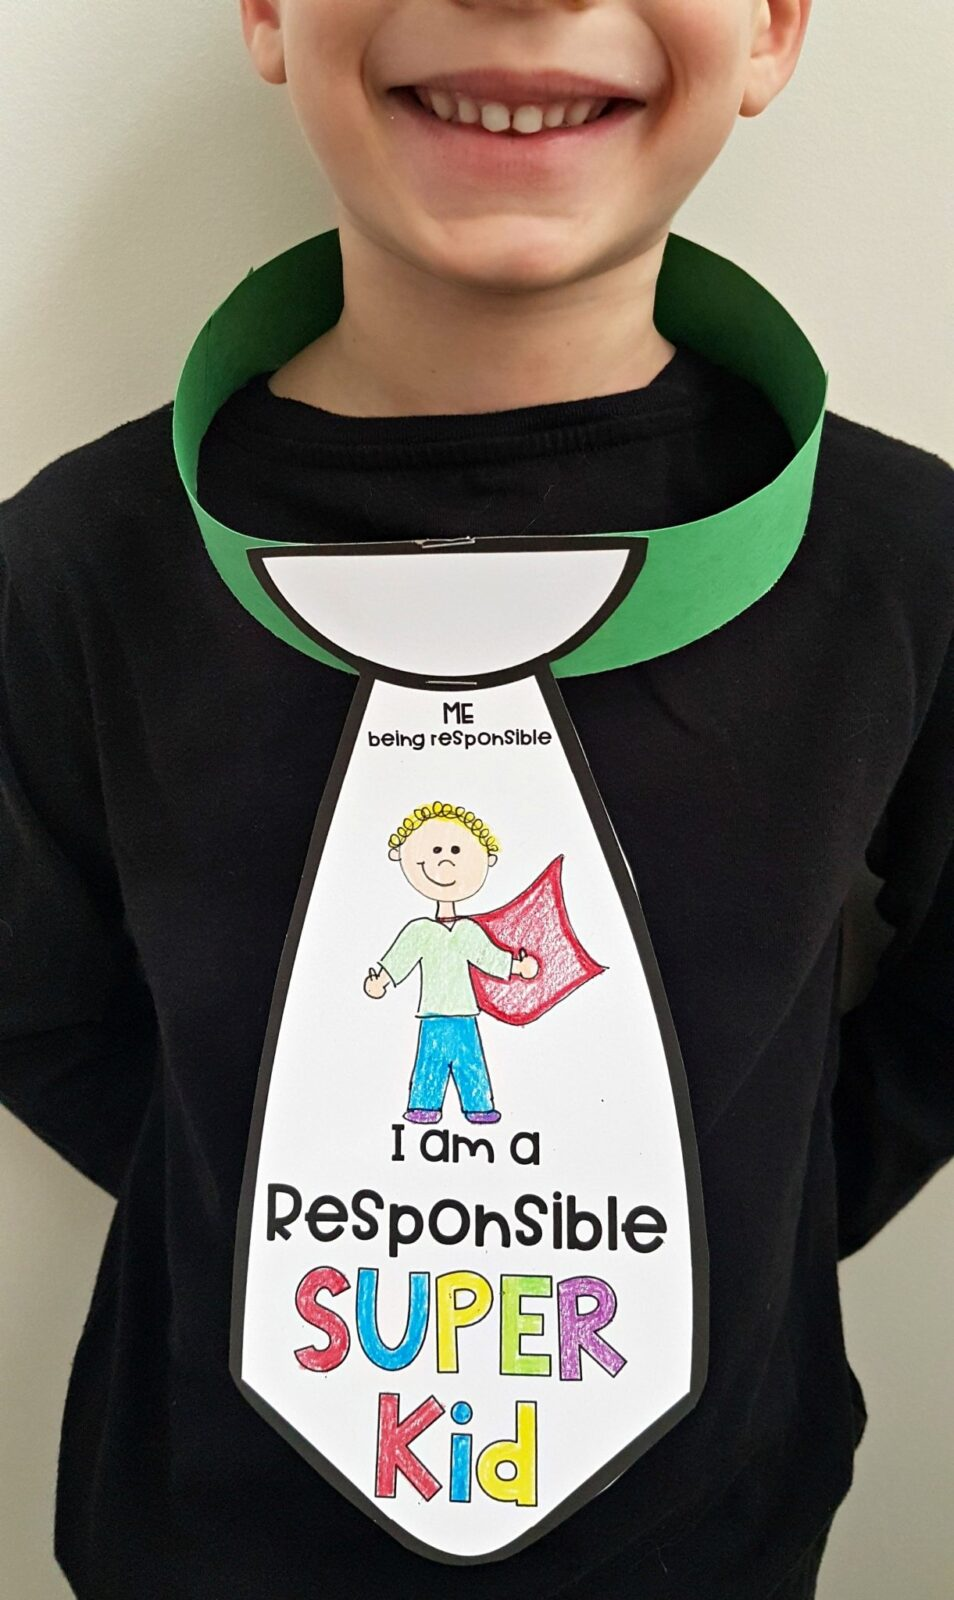 teaching responsibility - I am a responsible super kid tie